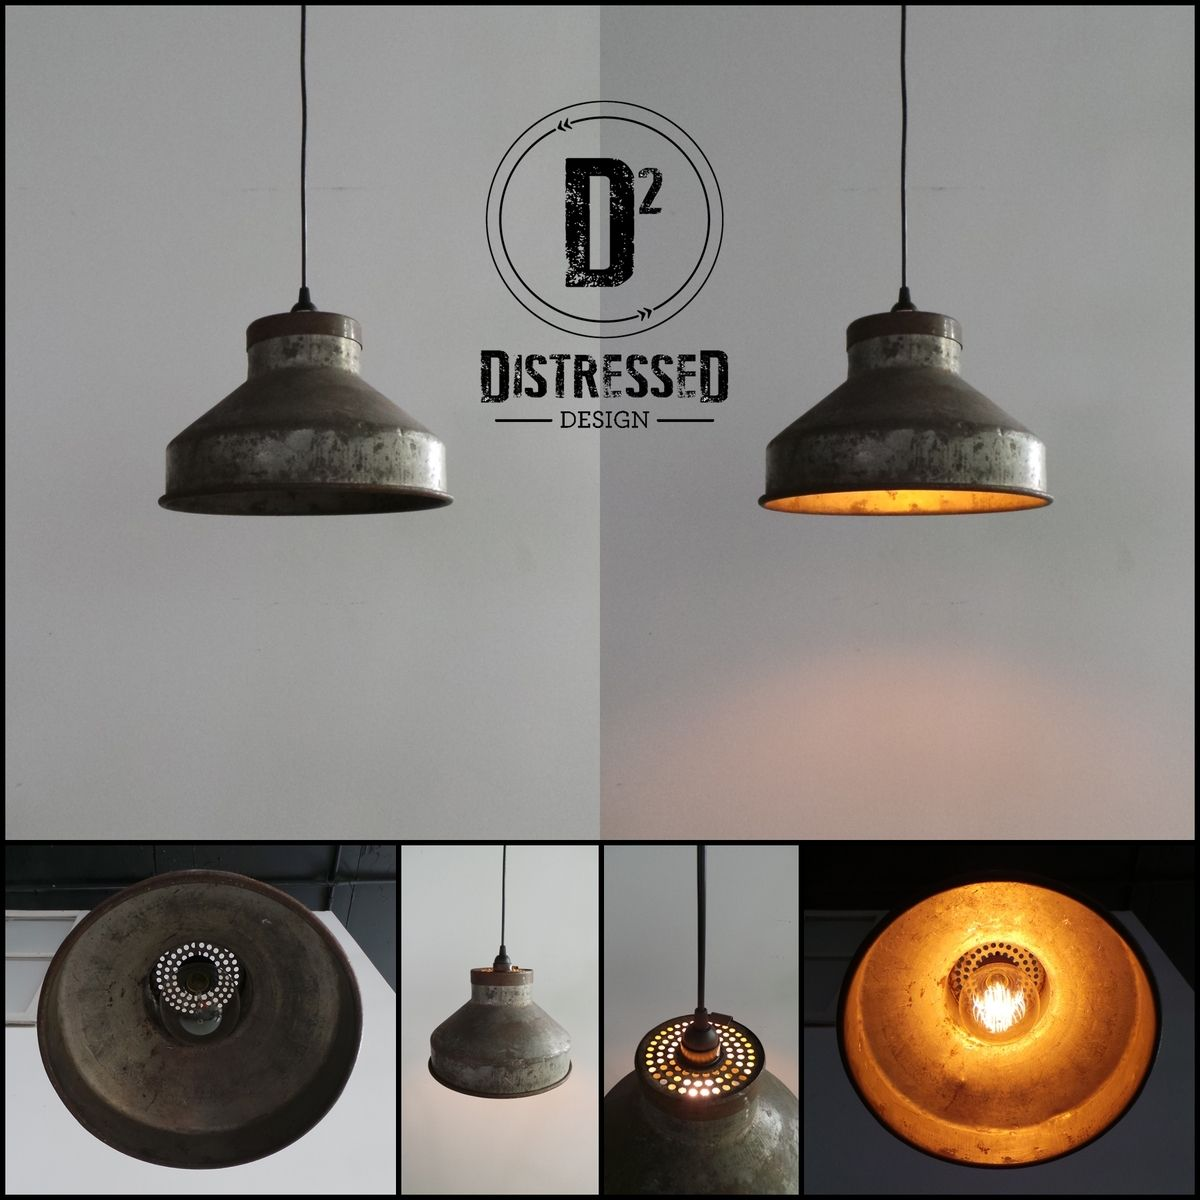 dp amazon edison coffee black lamp shade uk hanging buyee co kitchen ceiling lighting light vintage metal loft pendant industrial head bar